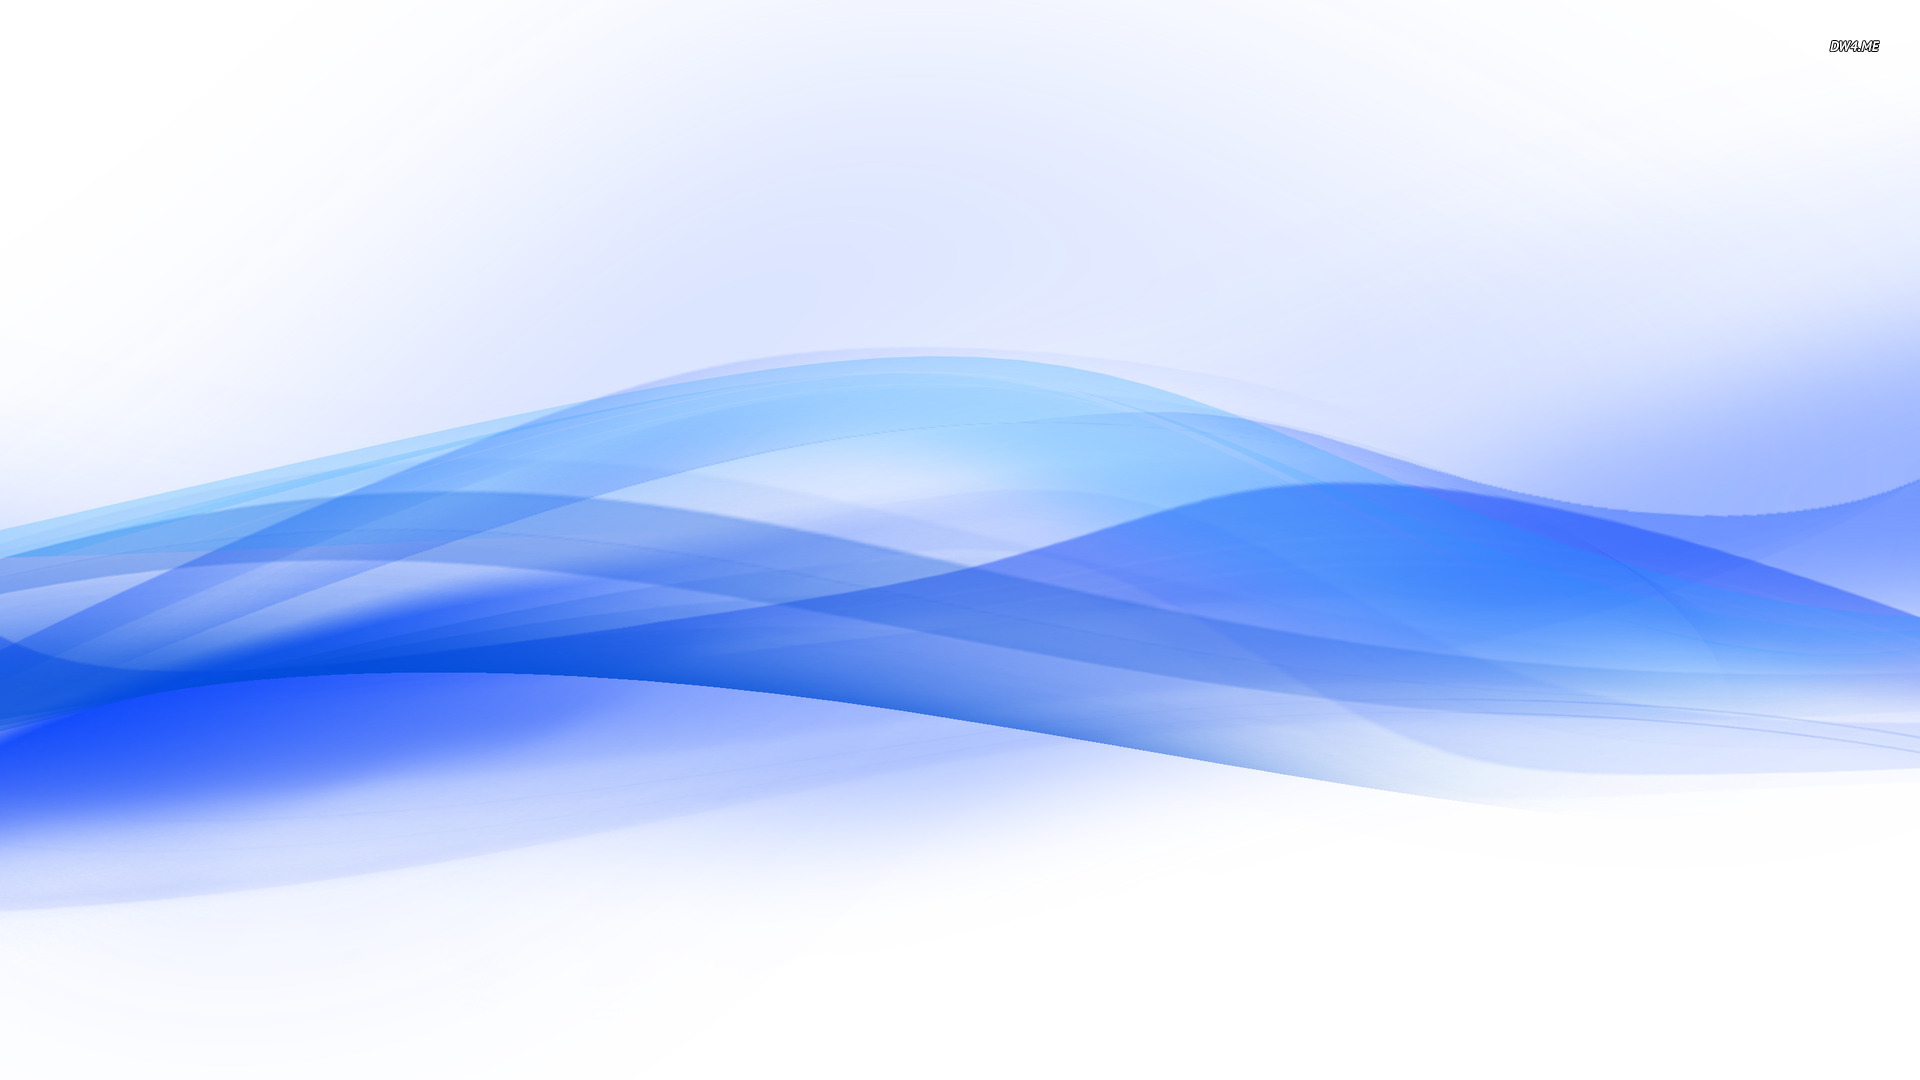 blue line wave background - photo #24